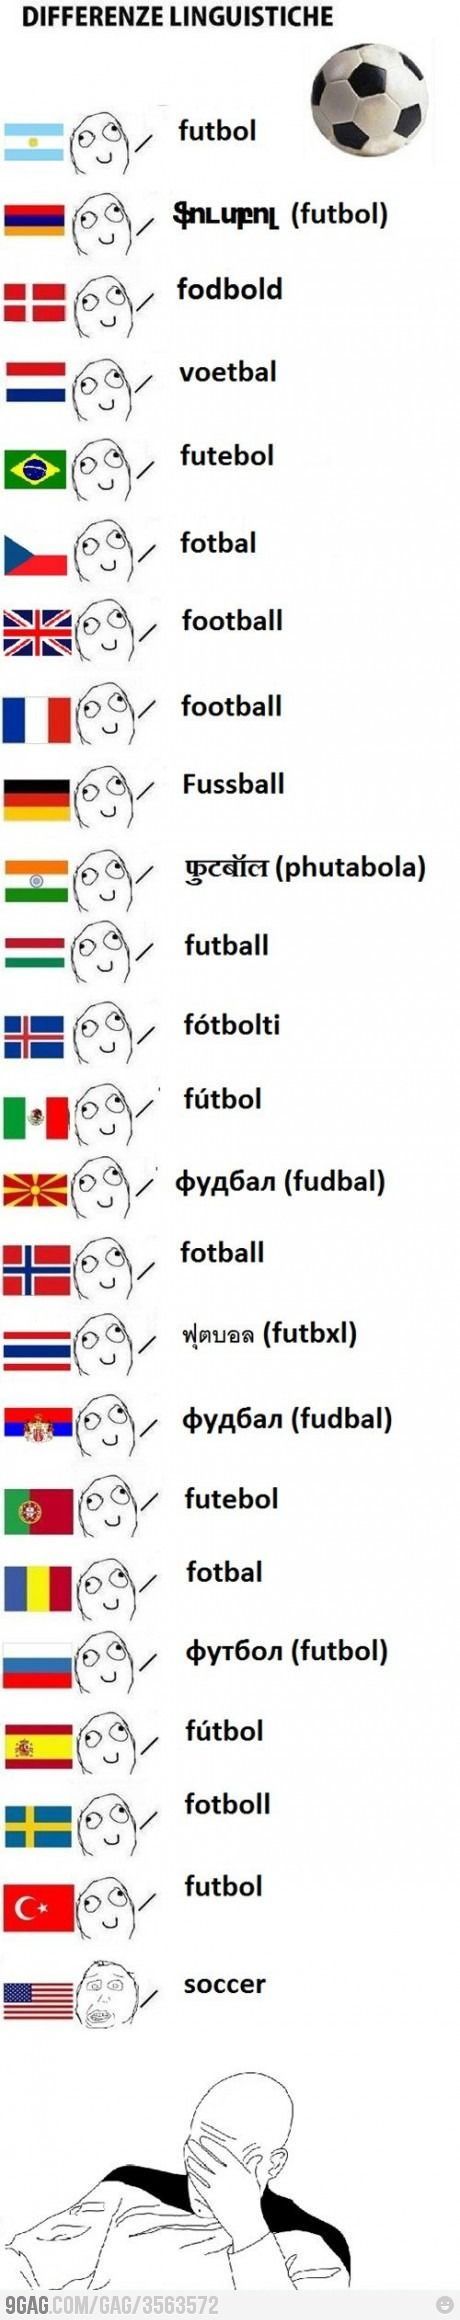 """I hate all sports, but I still think it's silly that we don't call it """"football"""". I mean, the football that we play doesn't even use the feet much!"""